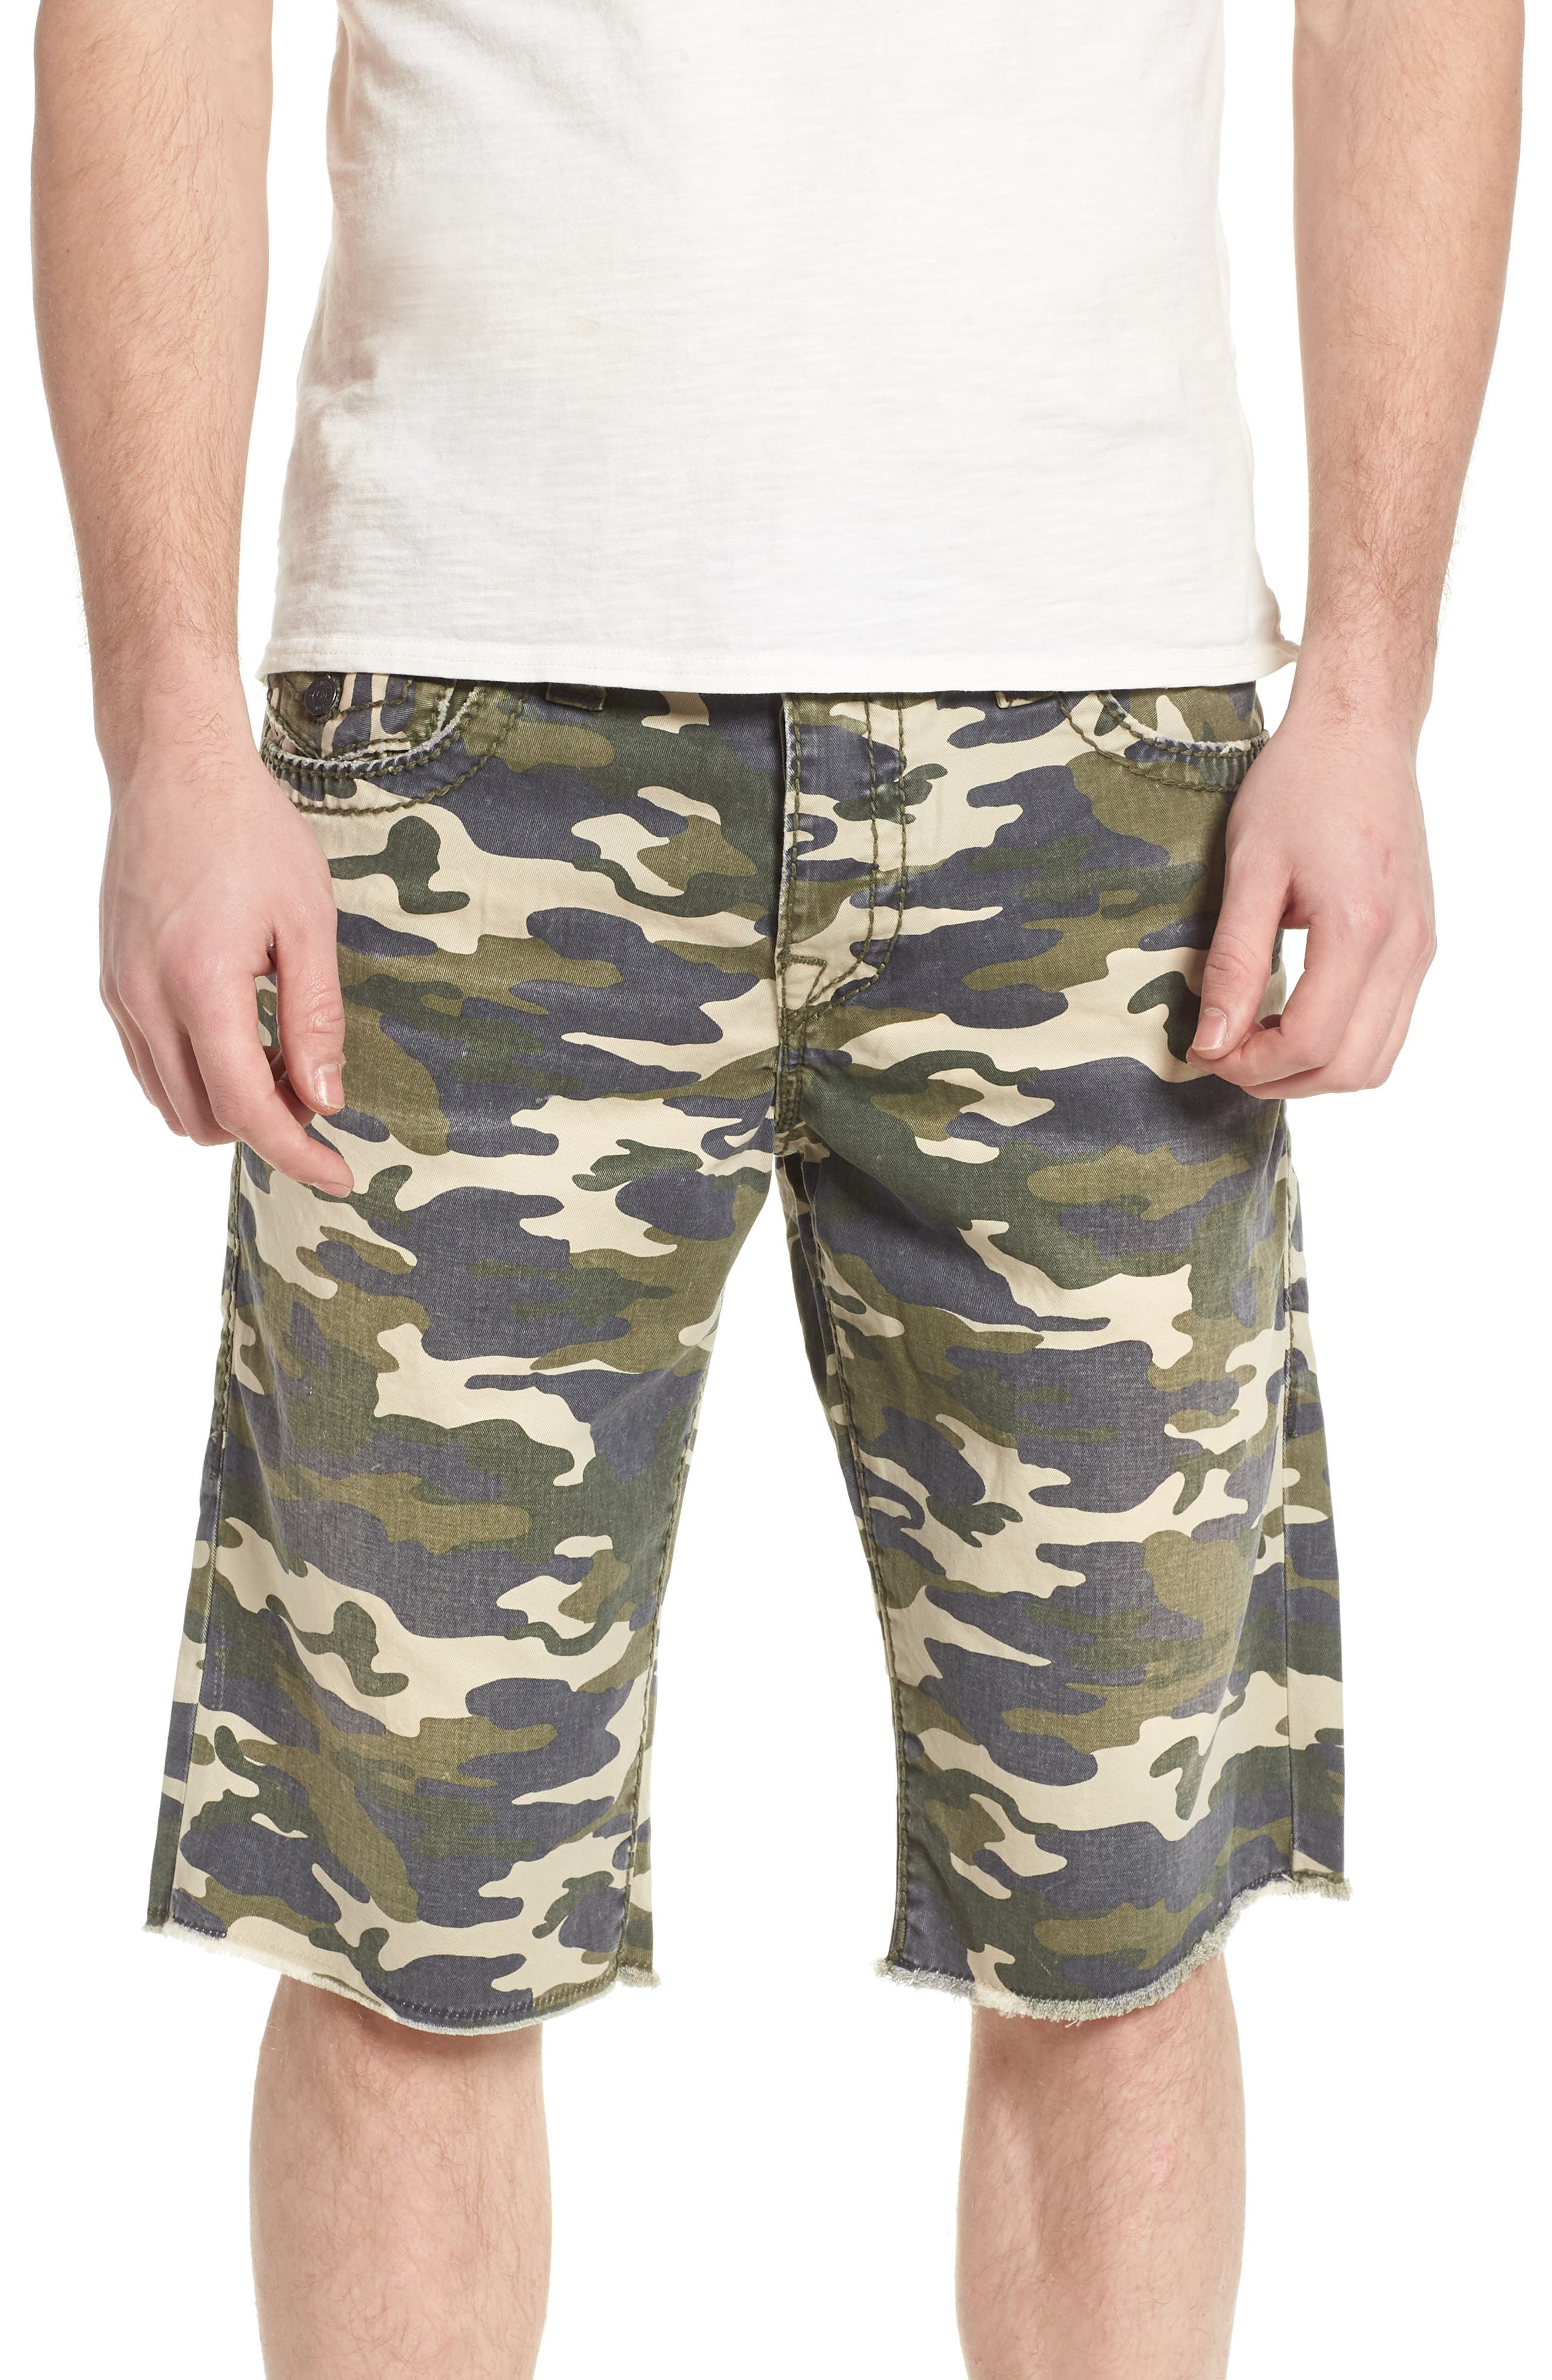 Ricky Relaxed Fit Shorts,                             Main thumbnail 1, color,                             Epl Territory